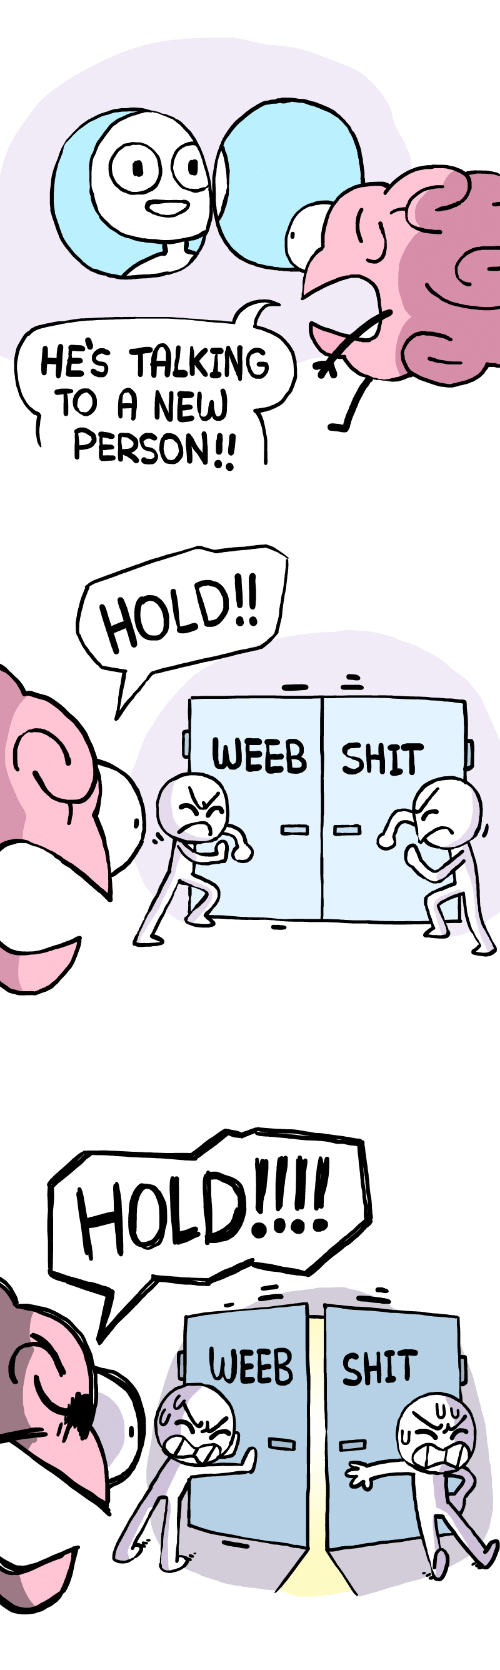 weeb: HEs TALKING  TO A NEUW  PERSON!!   HOLD/  WEEB SHIT   HoLD!!  dWEEB SHIT  Uu